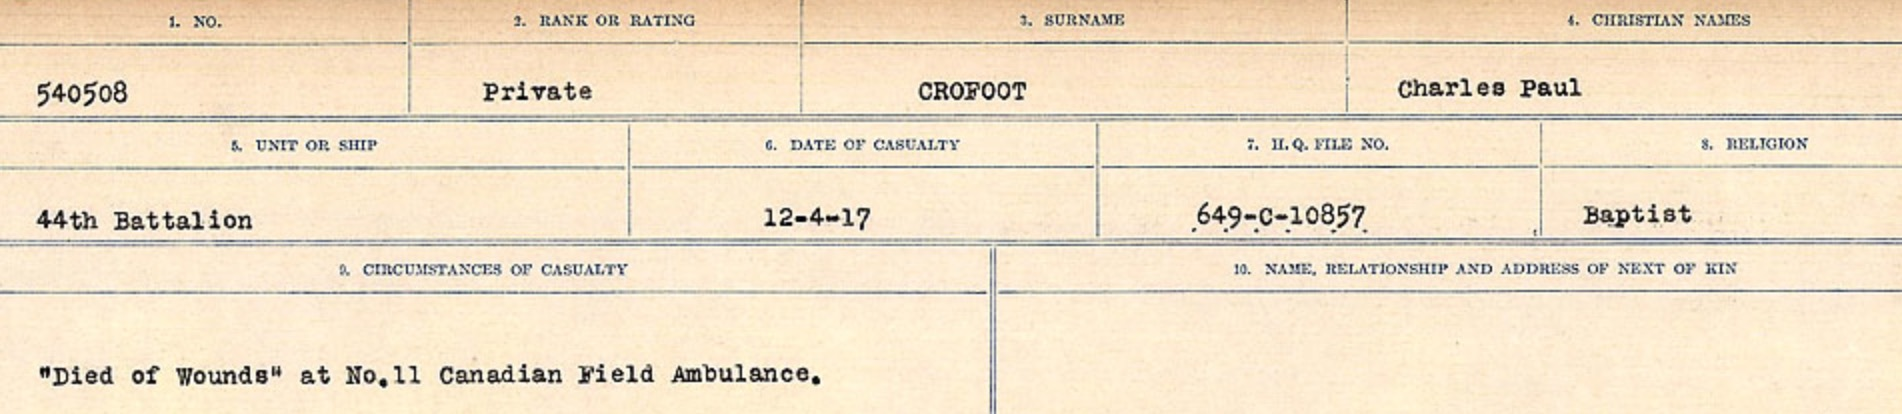 Circumstances of death registers– Source: Library and Archives Canada. CIRCUMSTANCES OF DEATH REGISTERS, FIRST WORLD WAR Surnames: CRABB TO CROSSLAND Microform Sequence 24; Volume Number 31829_B016733. Reference RG150, 1992-93/314, 168. Page 603 of 788.